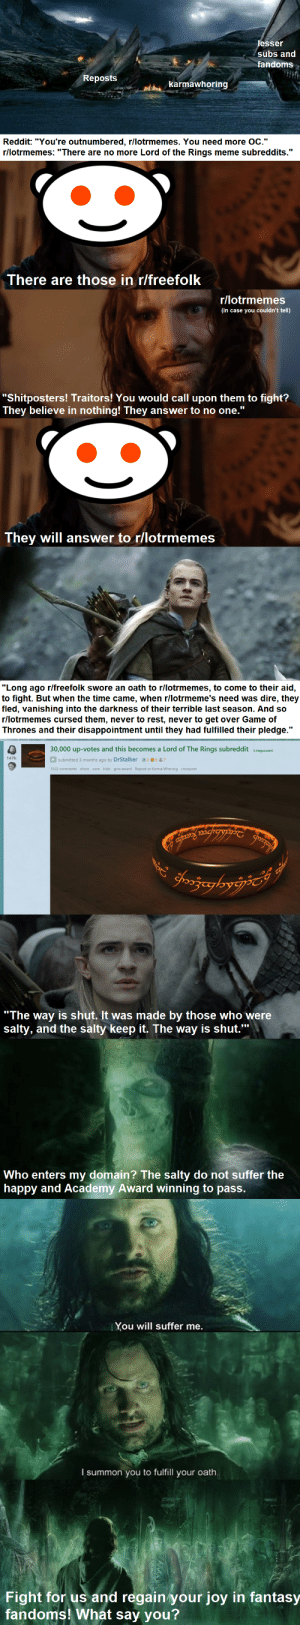 """All in good fun: lesser  subs ann  fandoms  Reposts  karmawhoring  Reddit: """"You're outnumbered, r/lotrmemes. You need more OC.""""  r/lotrmemes: """"There are no more Lord of the Rings meme subreddits.""""  There are those in r/freefolk  r/lotrmemes  (in case you couldn't tell)  """"Shitposters! Traitors! You would call upon them to fight?  They believe in nothing! They answer to no one.""""  They will answer to r/lotrmemes  """"Long ago r/freefolk swore an oath to r/lotrmemes, to come to their aid,  to fight. But when the time came, when r/lotrmeme's need was dire, they  fled, vanishing into the darkness of their terrible last season. And so  r/lotrmemes cursed them, never to rest, never to get over Game of  Thrones and their disappointment until they had fulfilled their pledge.""""  30,000 up-votes and this becomes a Lord of The Rings subreddit (imgur.com  147k  submitted 3 months ago by DrStalker3 637  1522 comments share save hide give award Repost or Karma Whoring crosspost  mcrgypT  chooza  Jeadors  """"The way is shut. It was made by those who were  salty, and the salty keep it. The way is shut.""""  Who enters my domain? The salty do not suffer the  happy and Academy Award winning to pass.  You will suffer me.  I summon you to fulfill your oath.  Fight for us and regain your joy in fantasy  fandoms! What say you? All in good fun"""